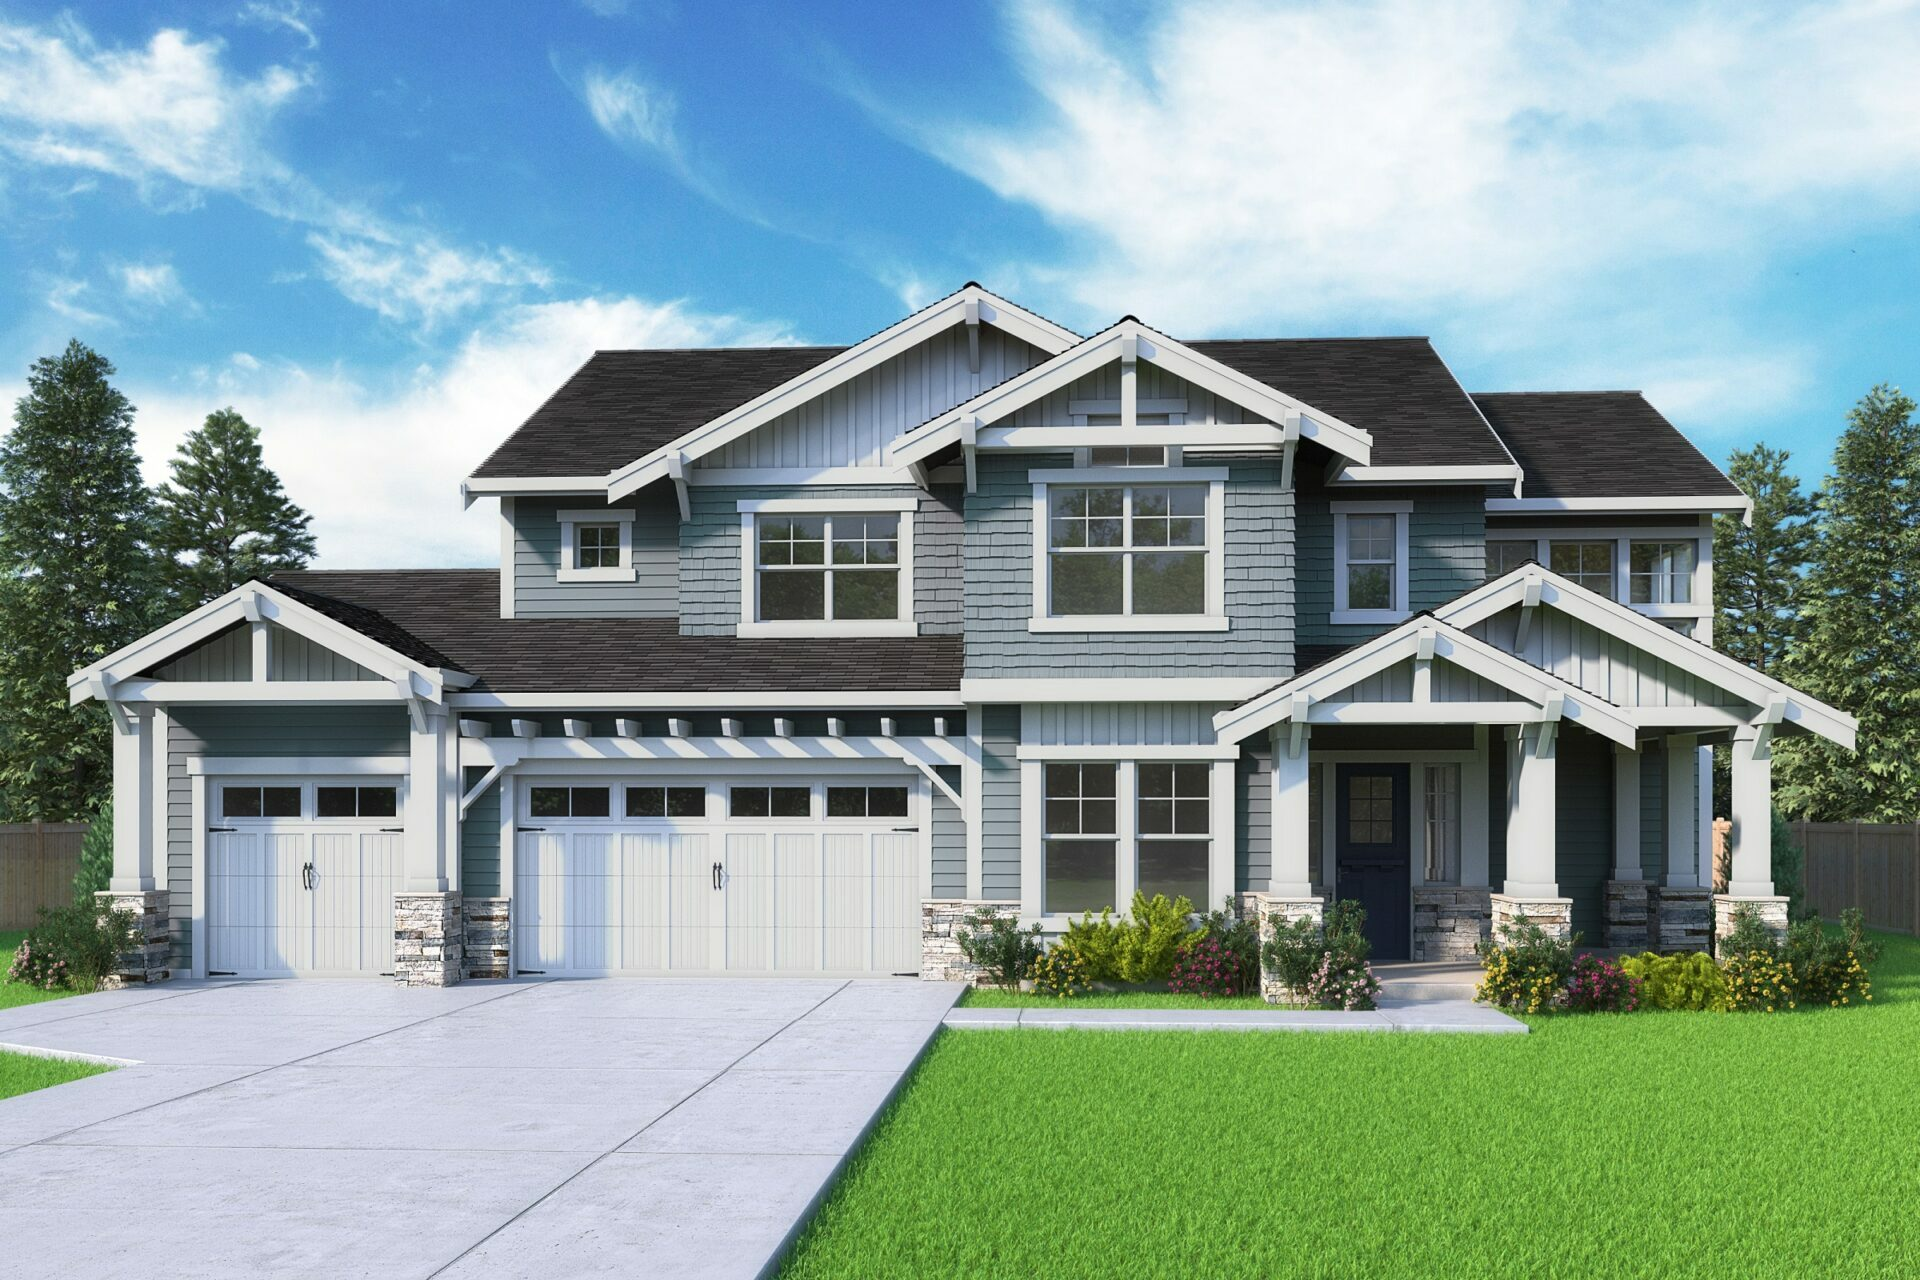 View our new luxury home construction on 9046 SE 61st St, in Mercer Island, WA from MN Custom Homes